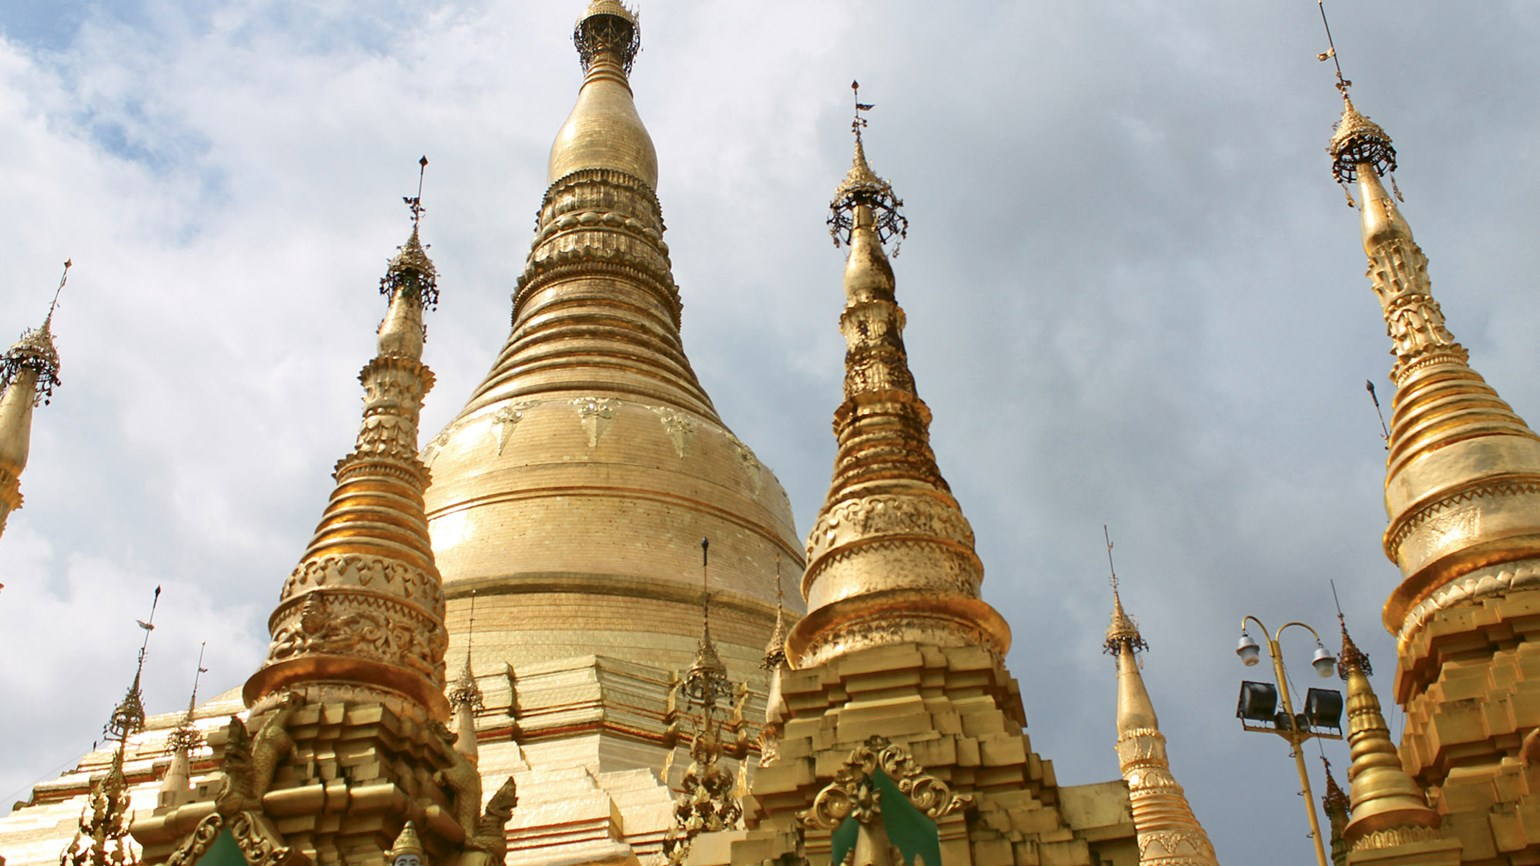 Sights, snacks, sailing in ever-evolving Yangon, Myanmar